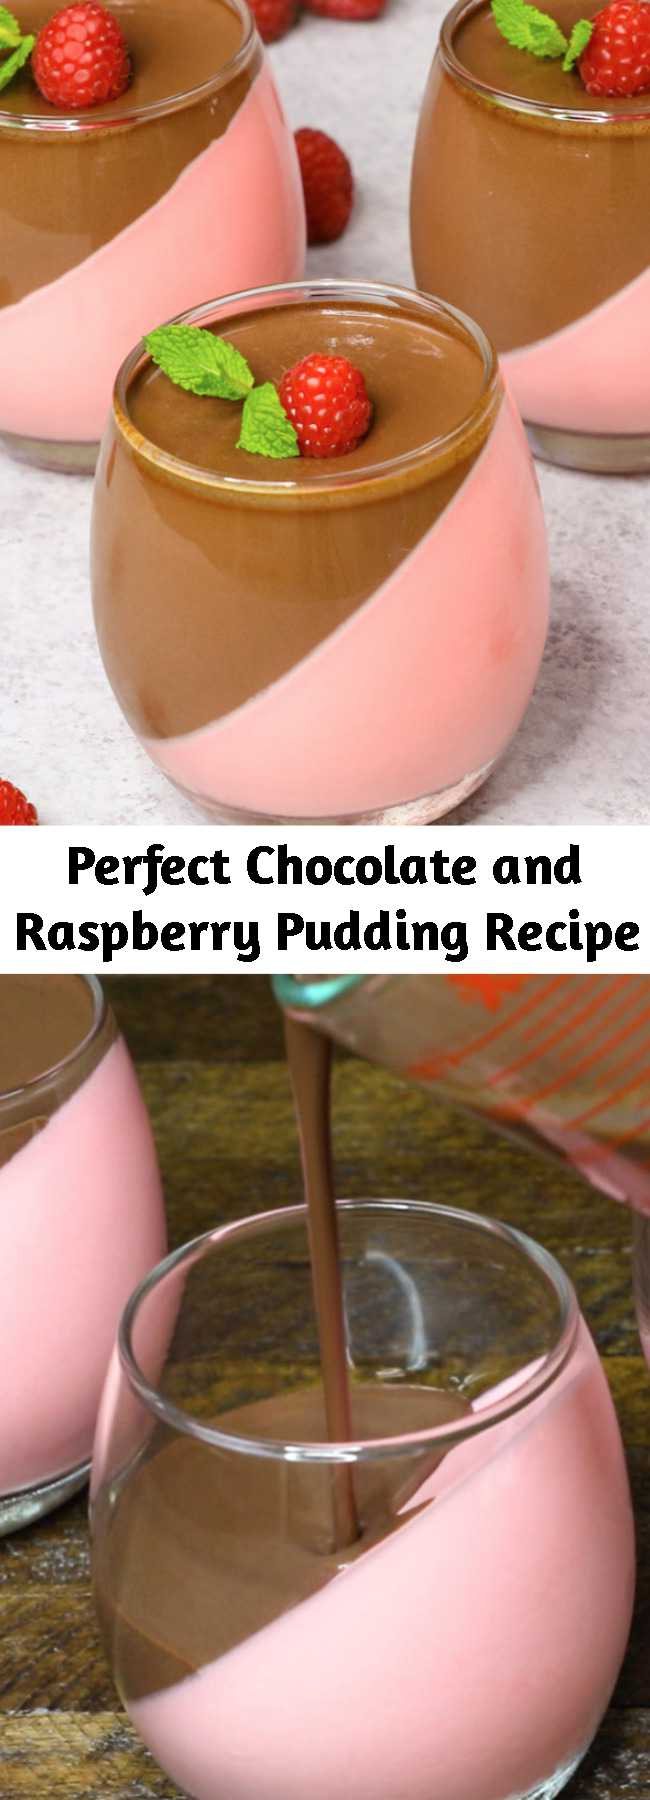 Perfect Chocolate and Raspberry Pudding Recipe - This Homemade Chocolate Pudding is a stunning make-ahead mouthwatering dessert that's creamy and smooth. It's an easy recipe with a few simple ingredients: raspberry jello powder, cool whip, half and half milk, gelatin, unsweet chocolate and sugar.